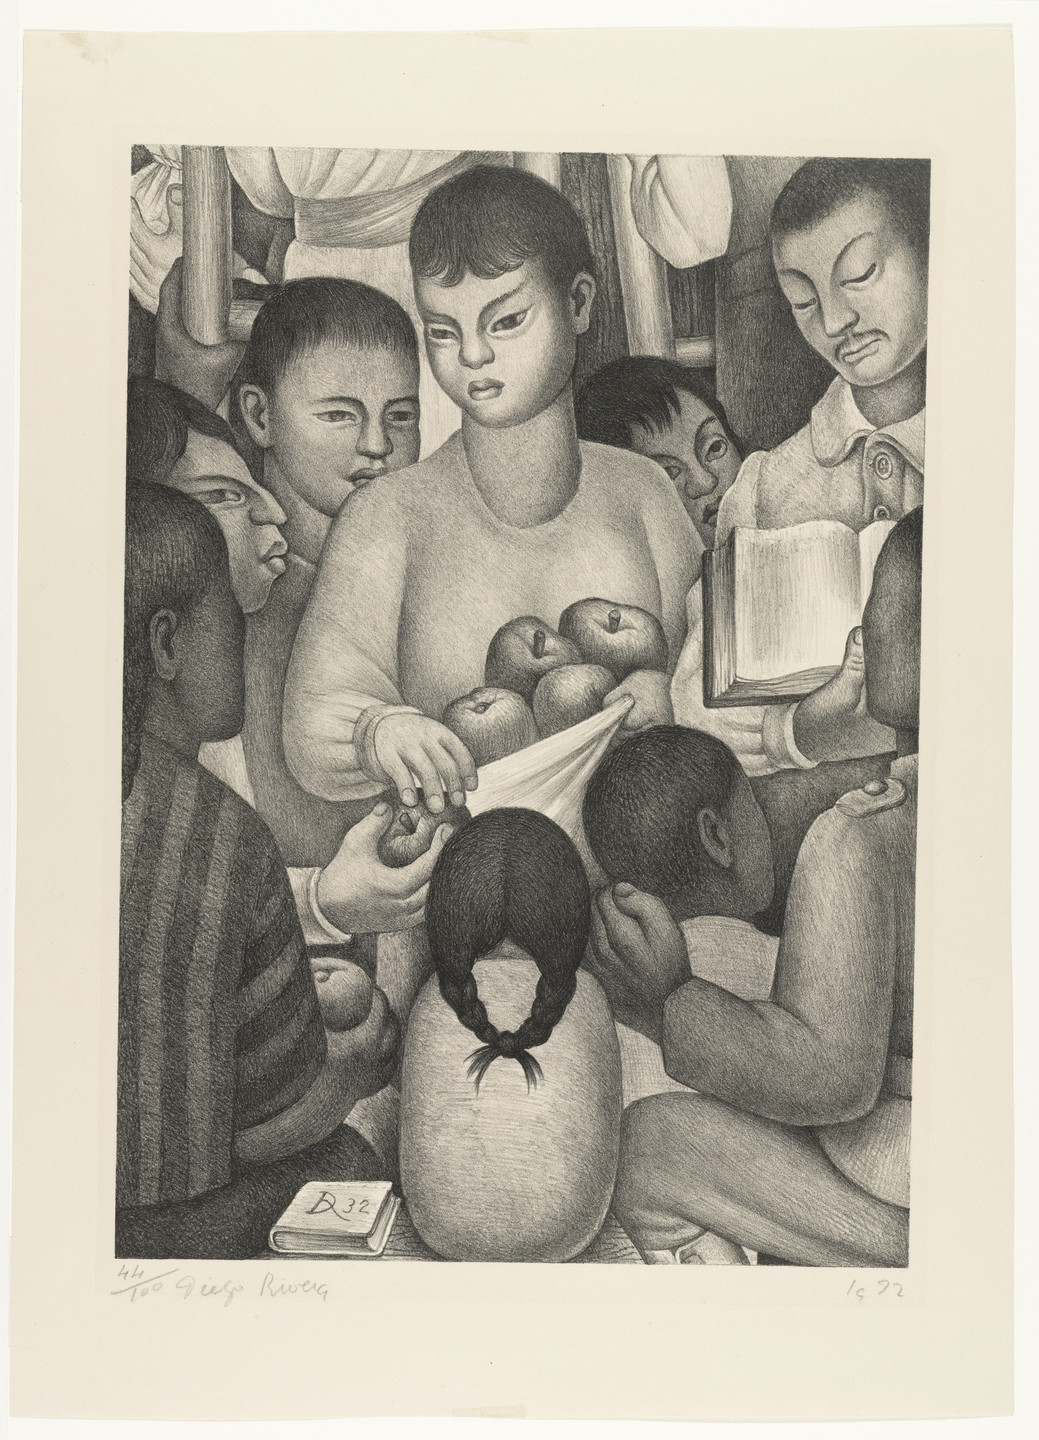 Diego Rivera. The Fruits of Labor. 1932